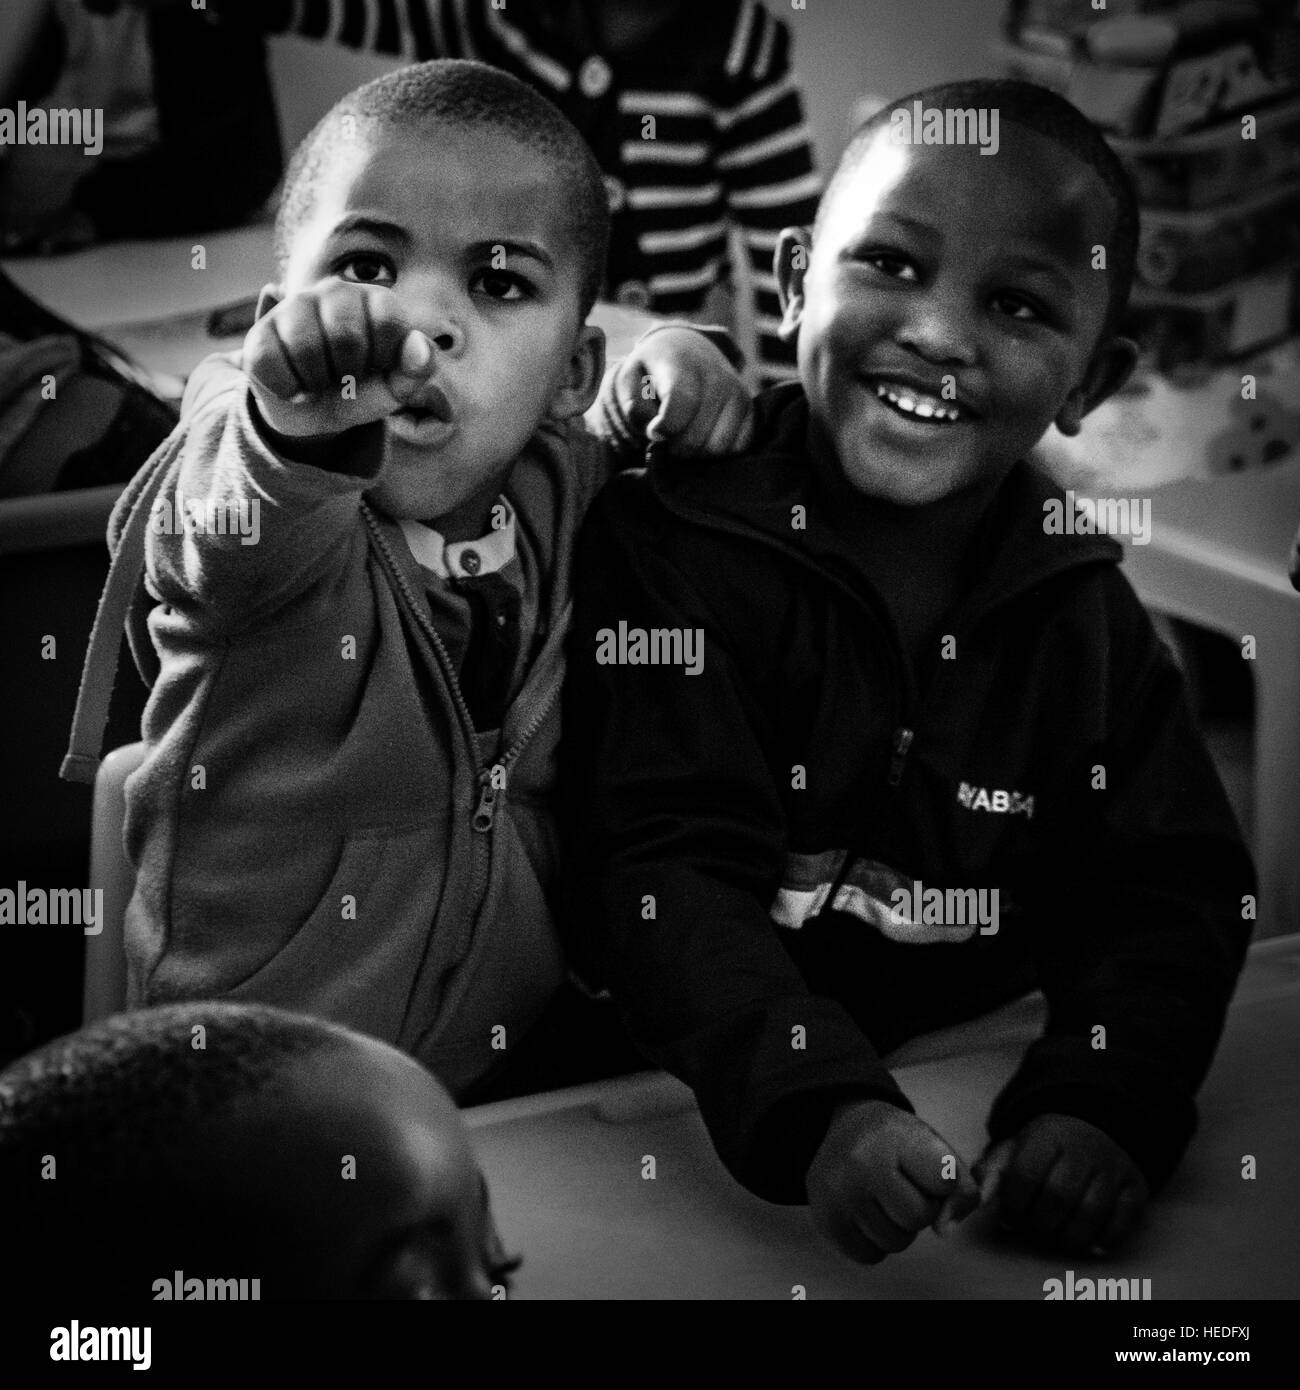 Two children strike a pose in a community supported school in a township in South Africa - Stock Image